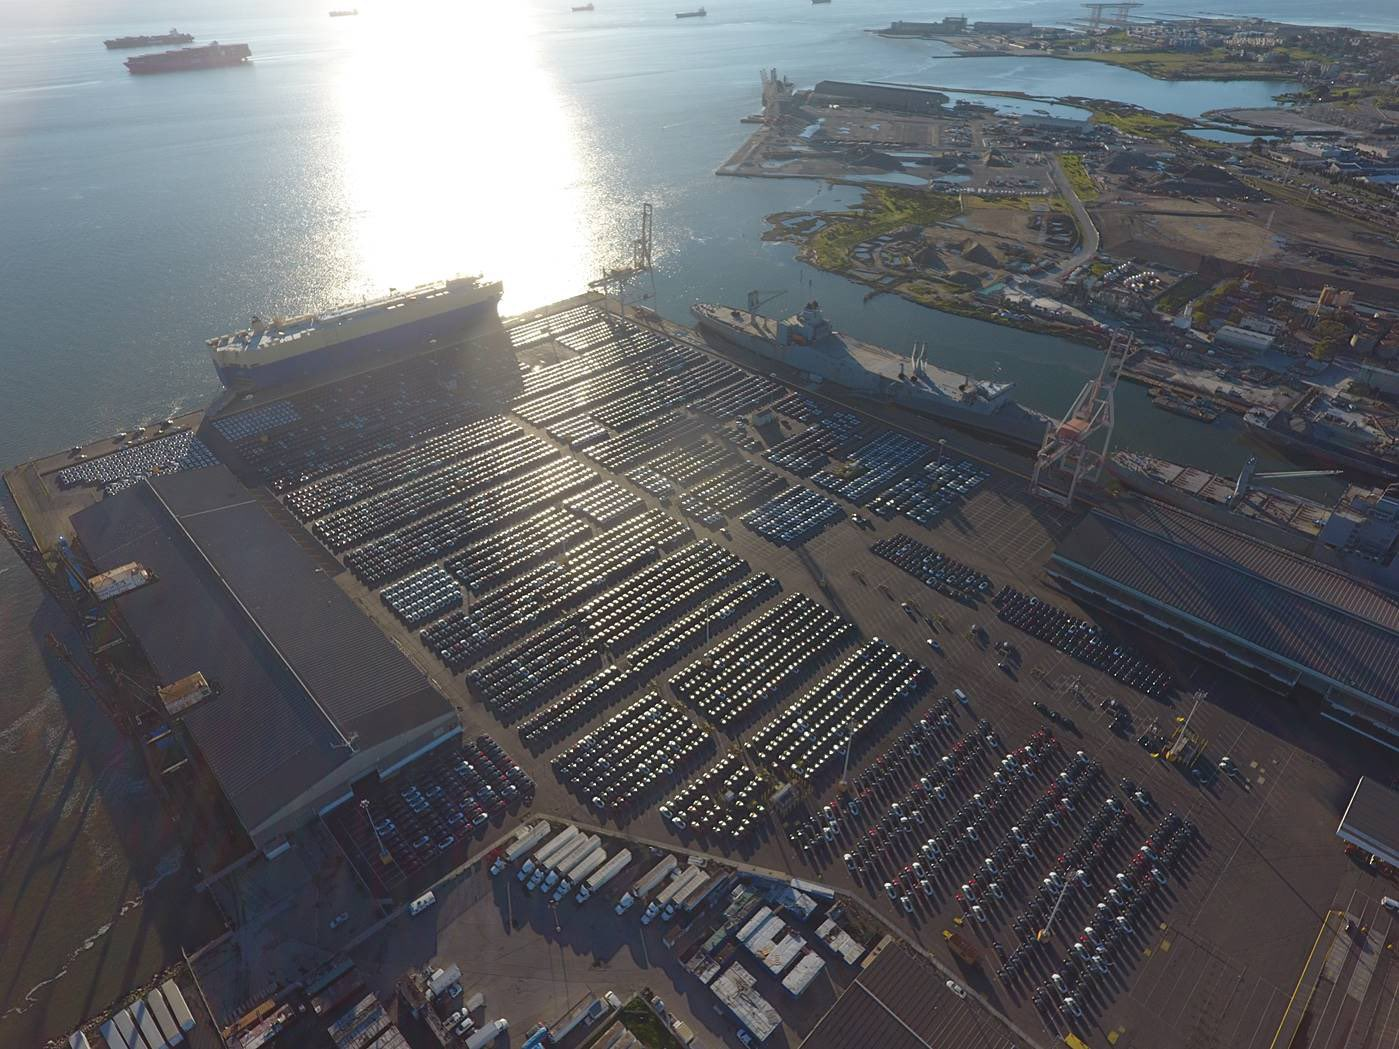 4,000 Tesla electric vehicles waiting at the San Francisco port to be shipped to Europe.